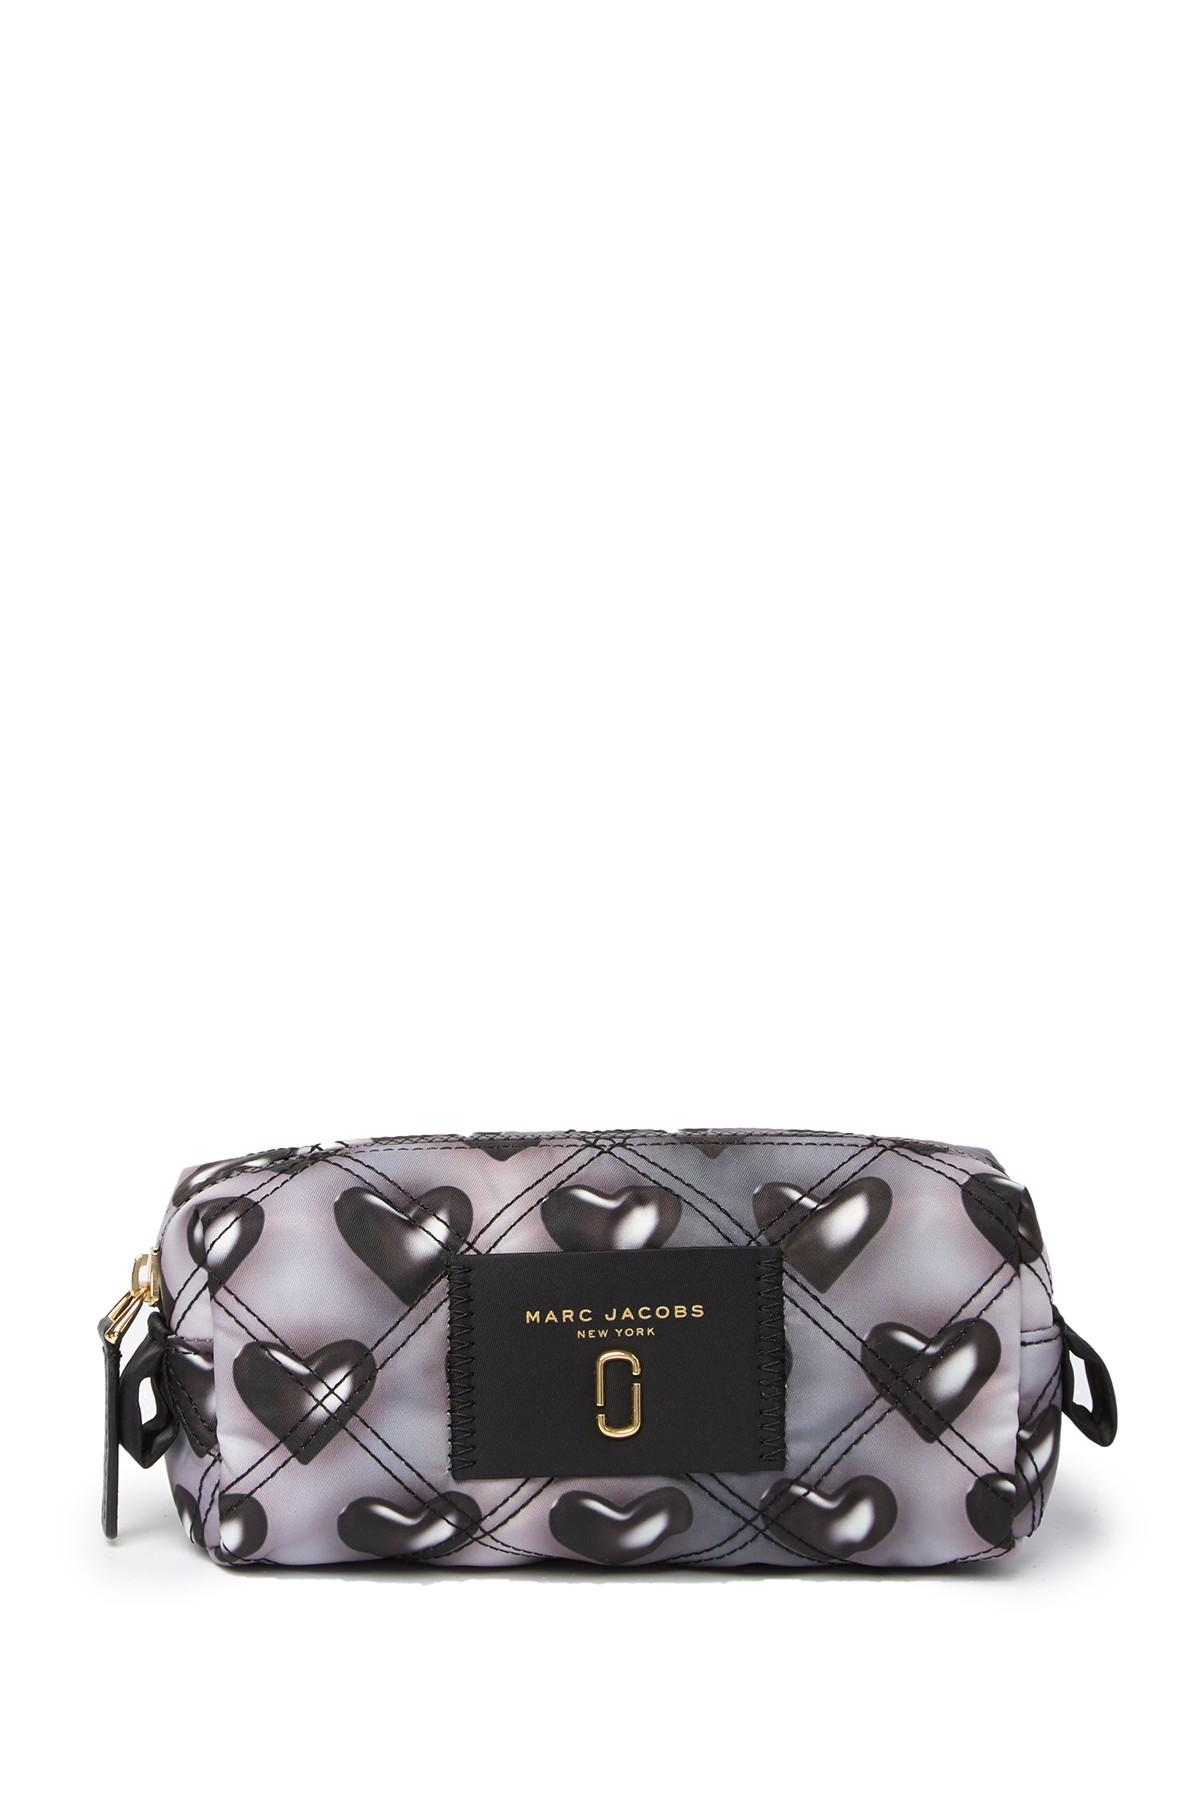 52ea69952079 Marc By Jacobs Purse Nordstrom Rack - Best Purse Image Ccdbb.Org